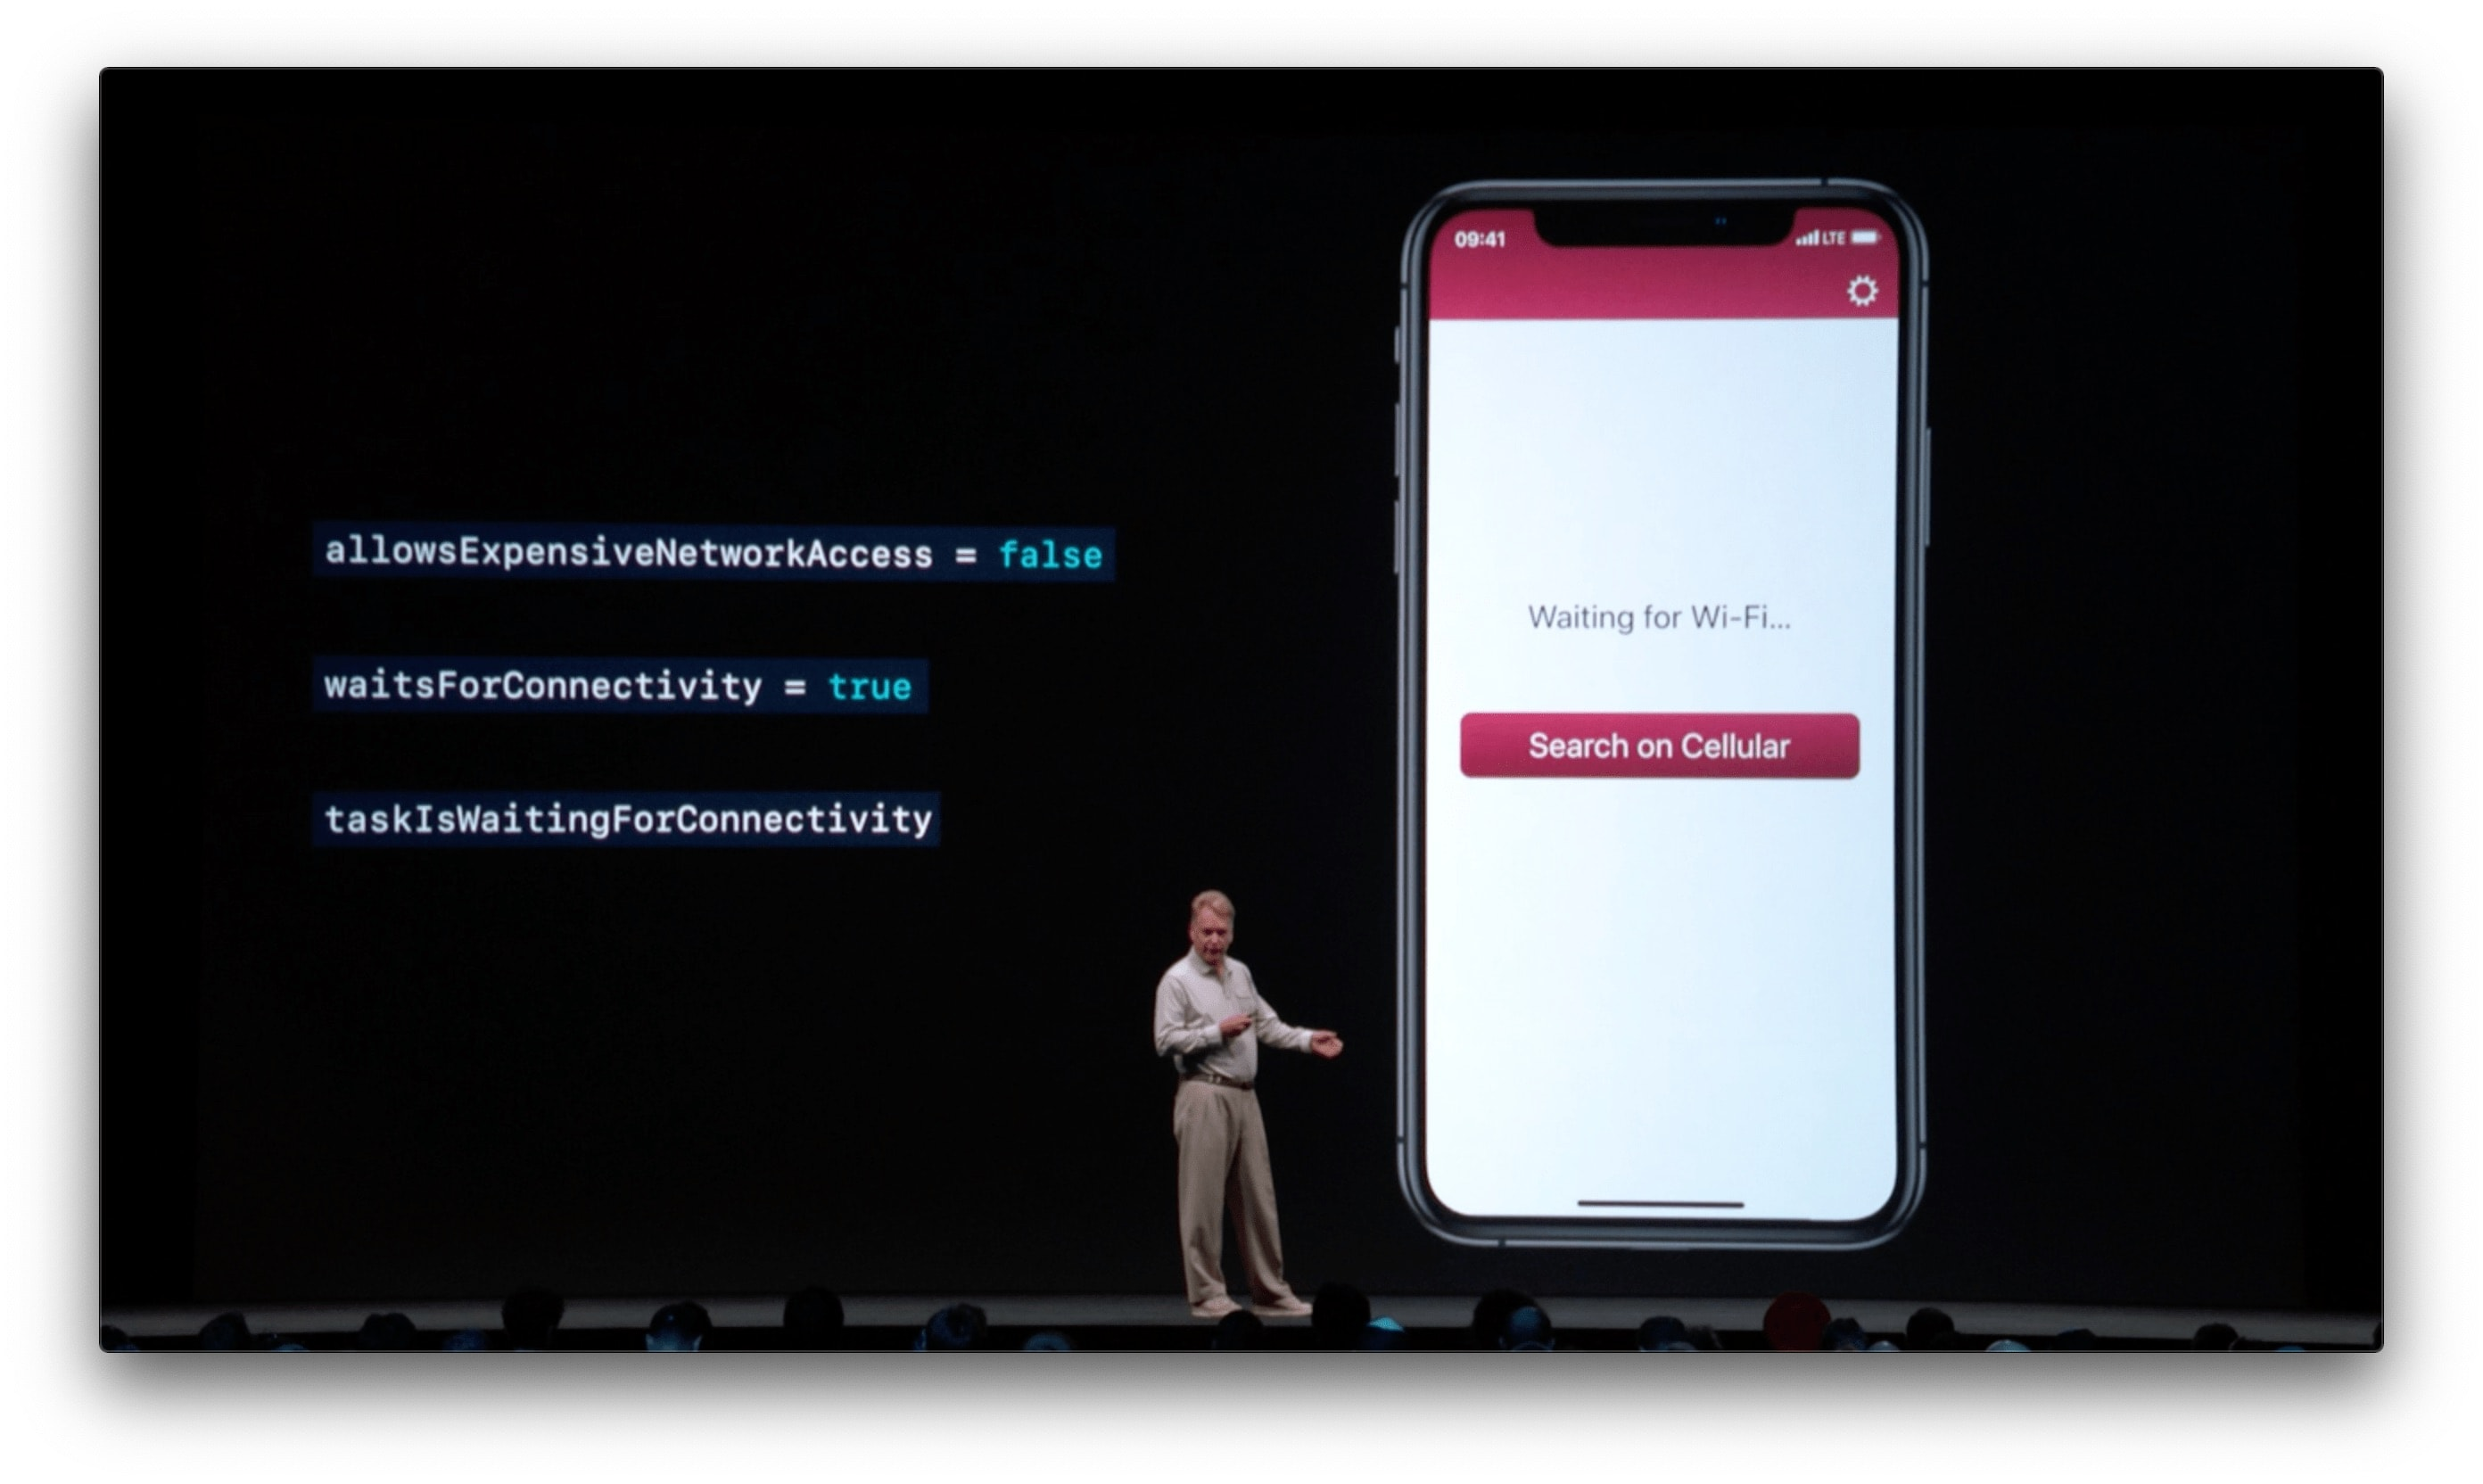 A knockoff of Vignette on a WWDC slide